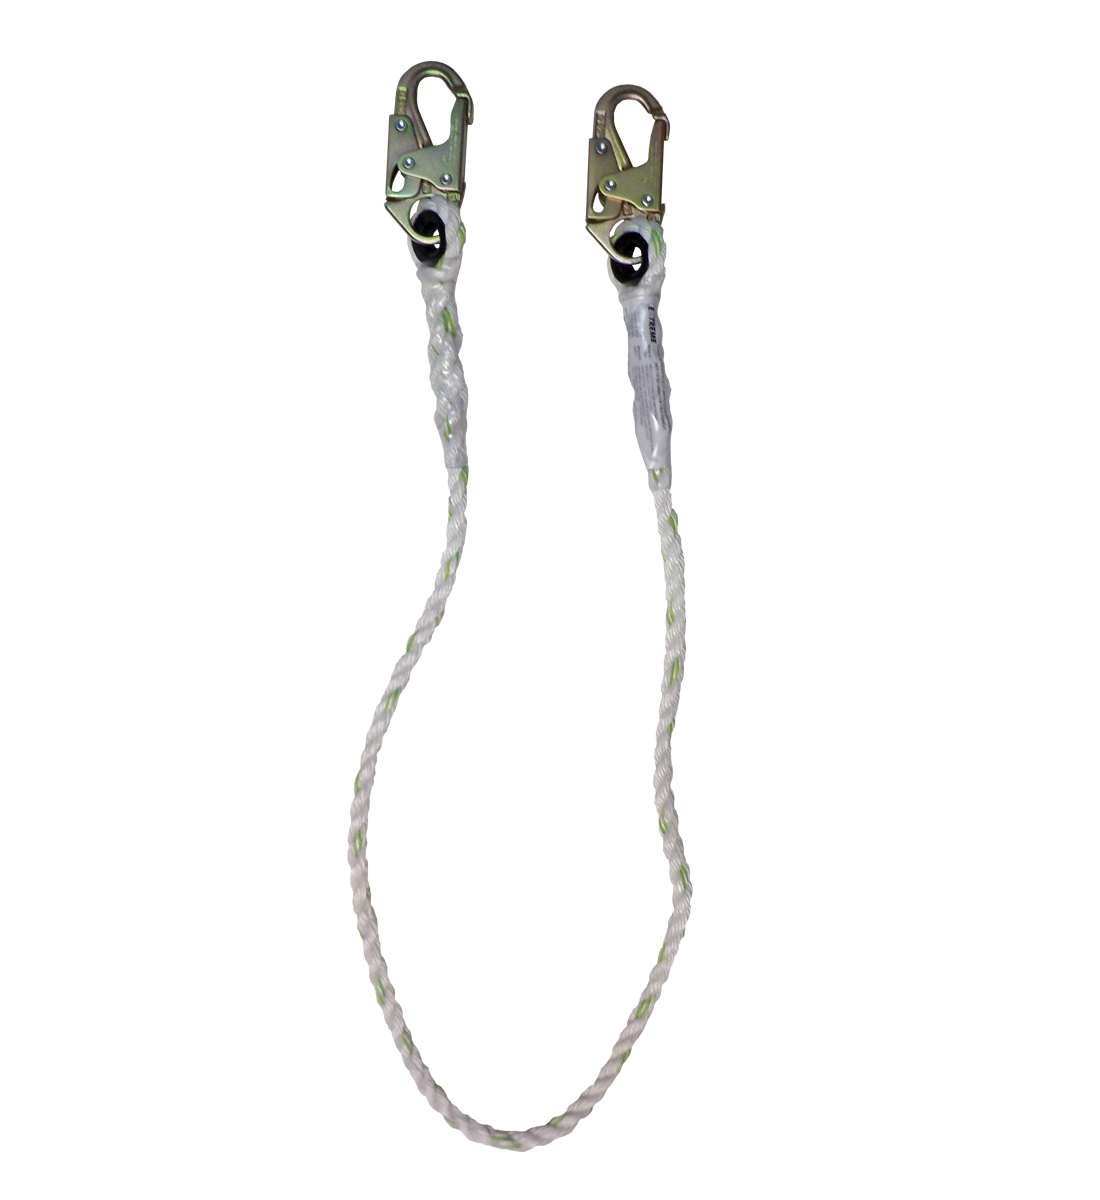 6 Polydac Rope Positioning Lanyard Garza Roofing